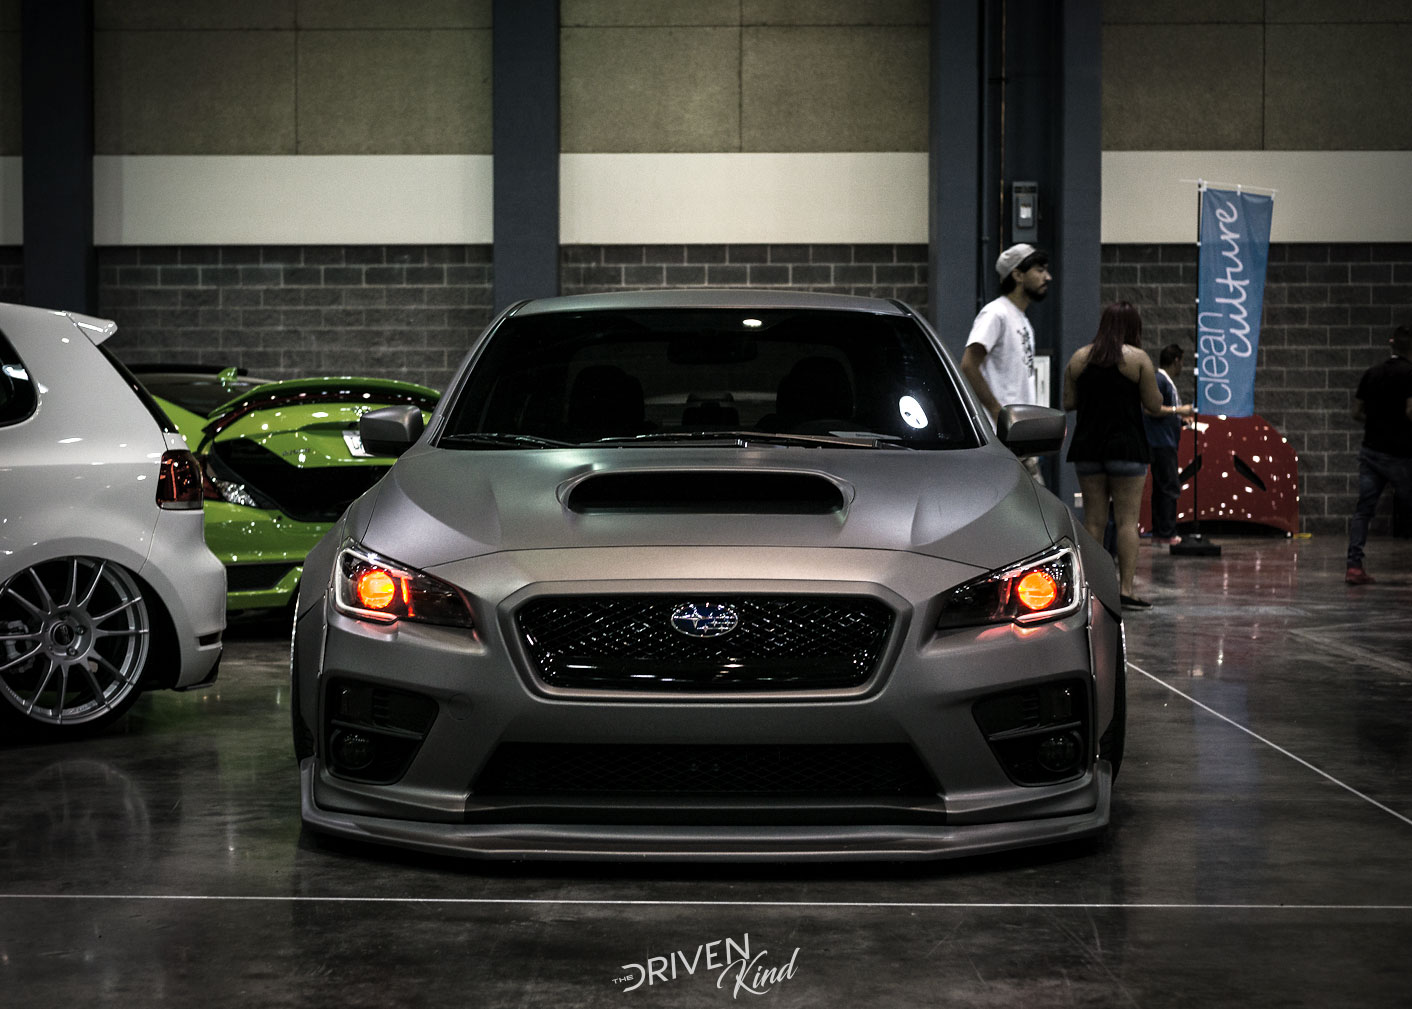 Subaru WRX STI STANCENATION FLORIDA PALM BEACH CONVENTION CENTER 2017 Pt. 1 The Driven Kind Coverage